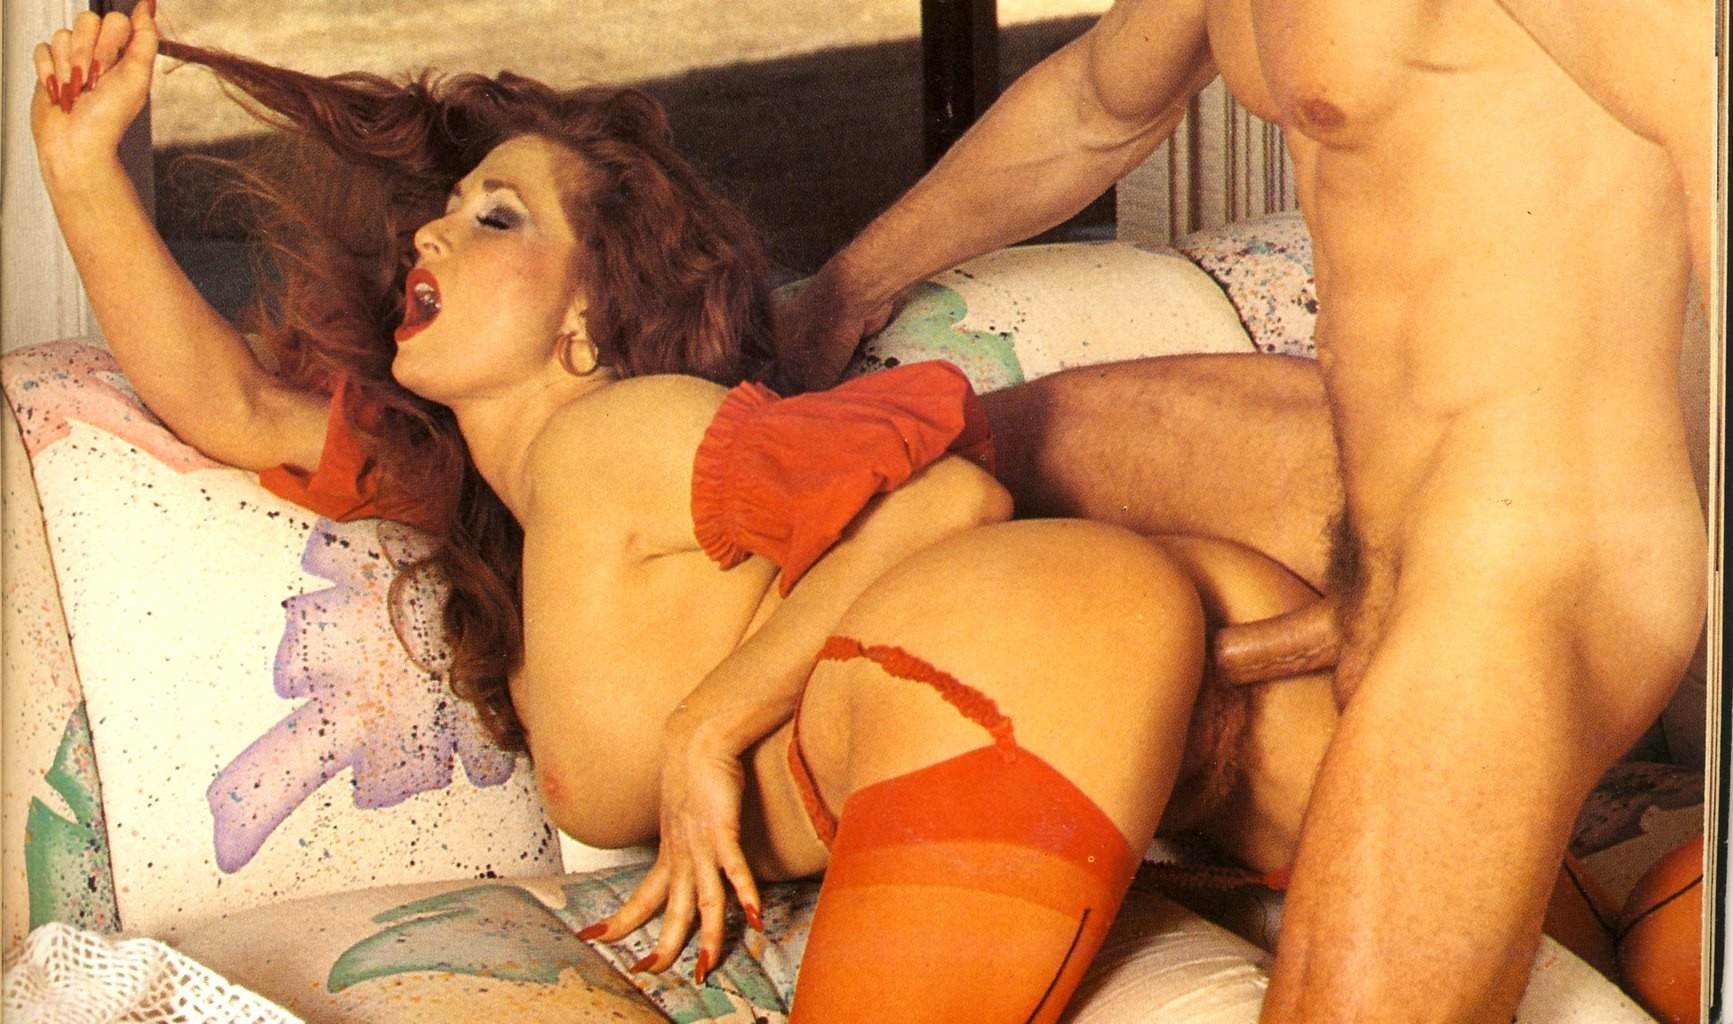 Vintage sex hd galery